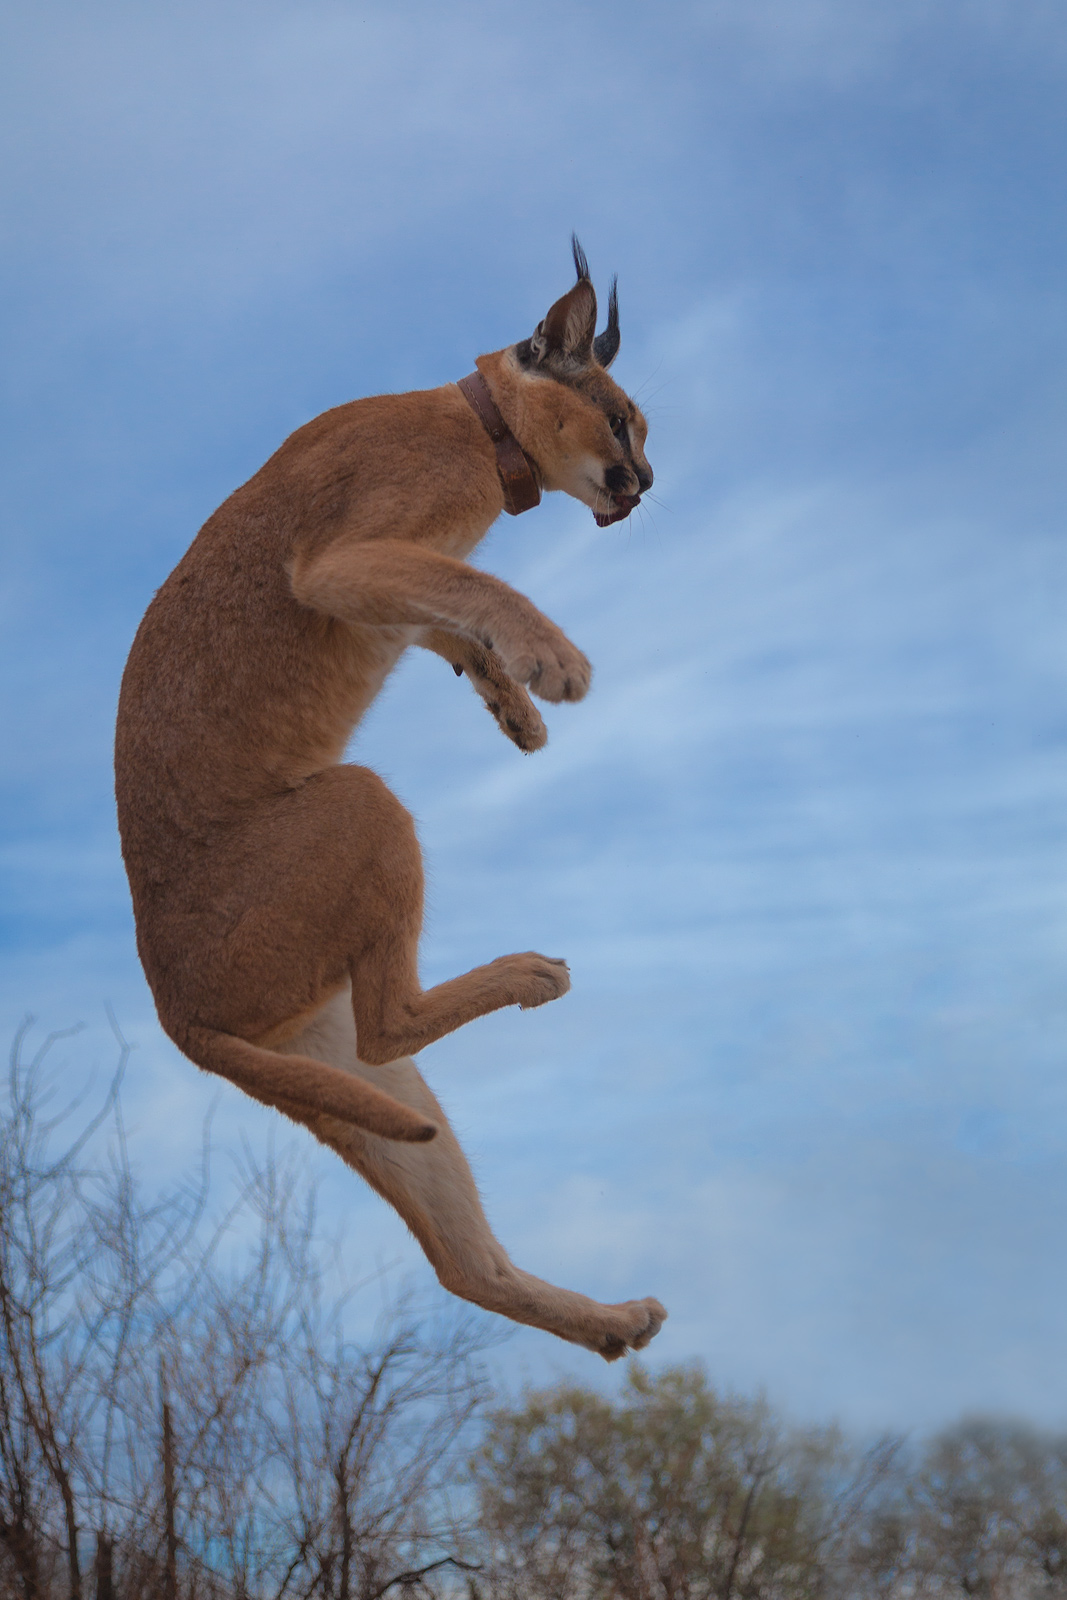 africa,african,caracal,cat,jumping,lynx,mammal,naankuse,naankuse lodge,namibia,namibian,ninja,vertical, photo